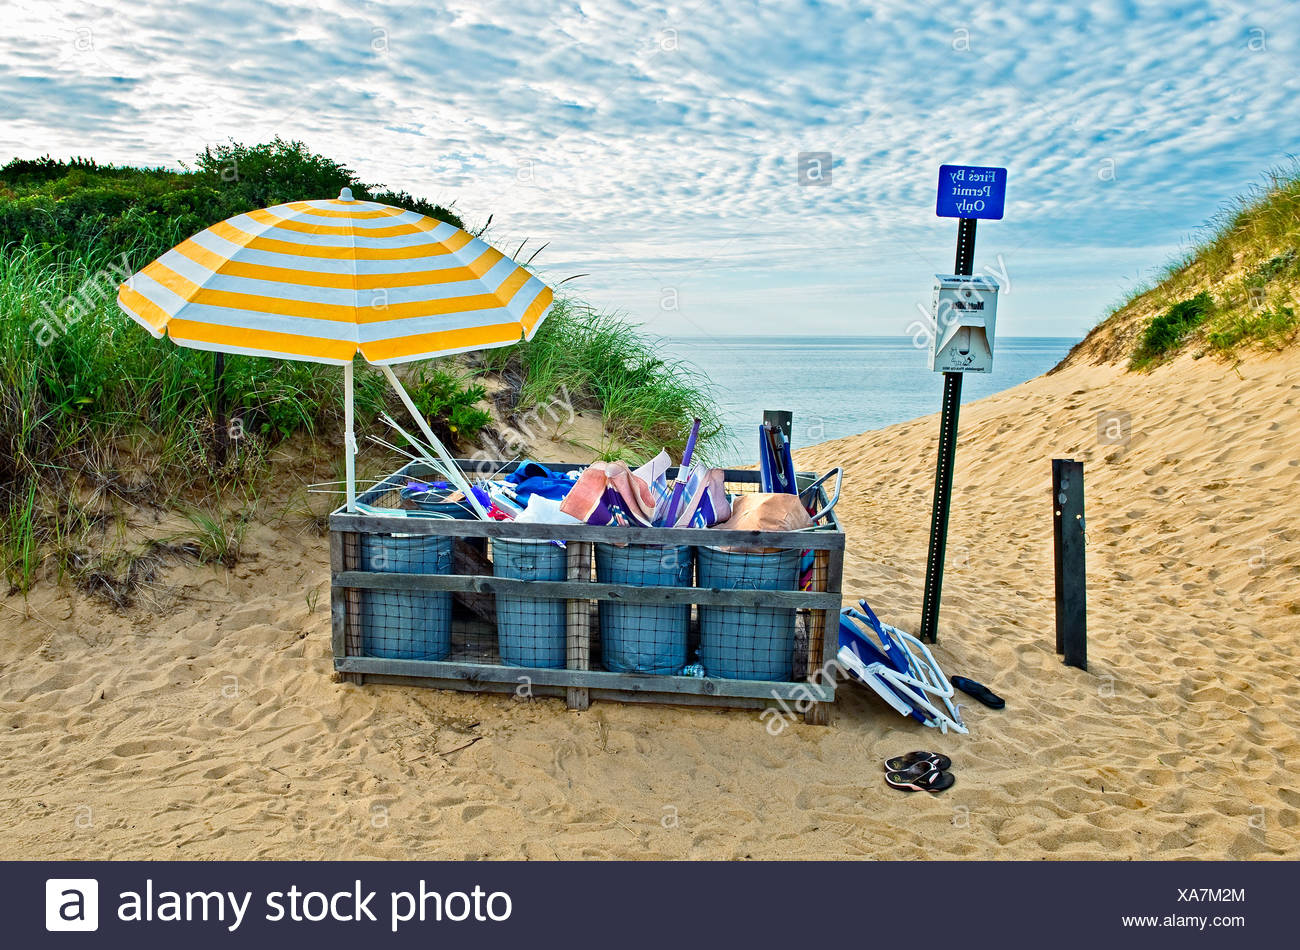 Beach trash, Long Nook Beach, Truro, Cape Cod, MA, USA - Stock Image